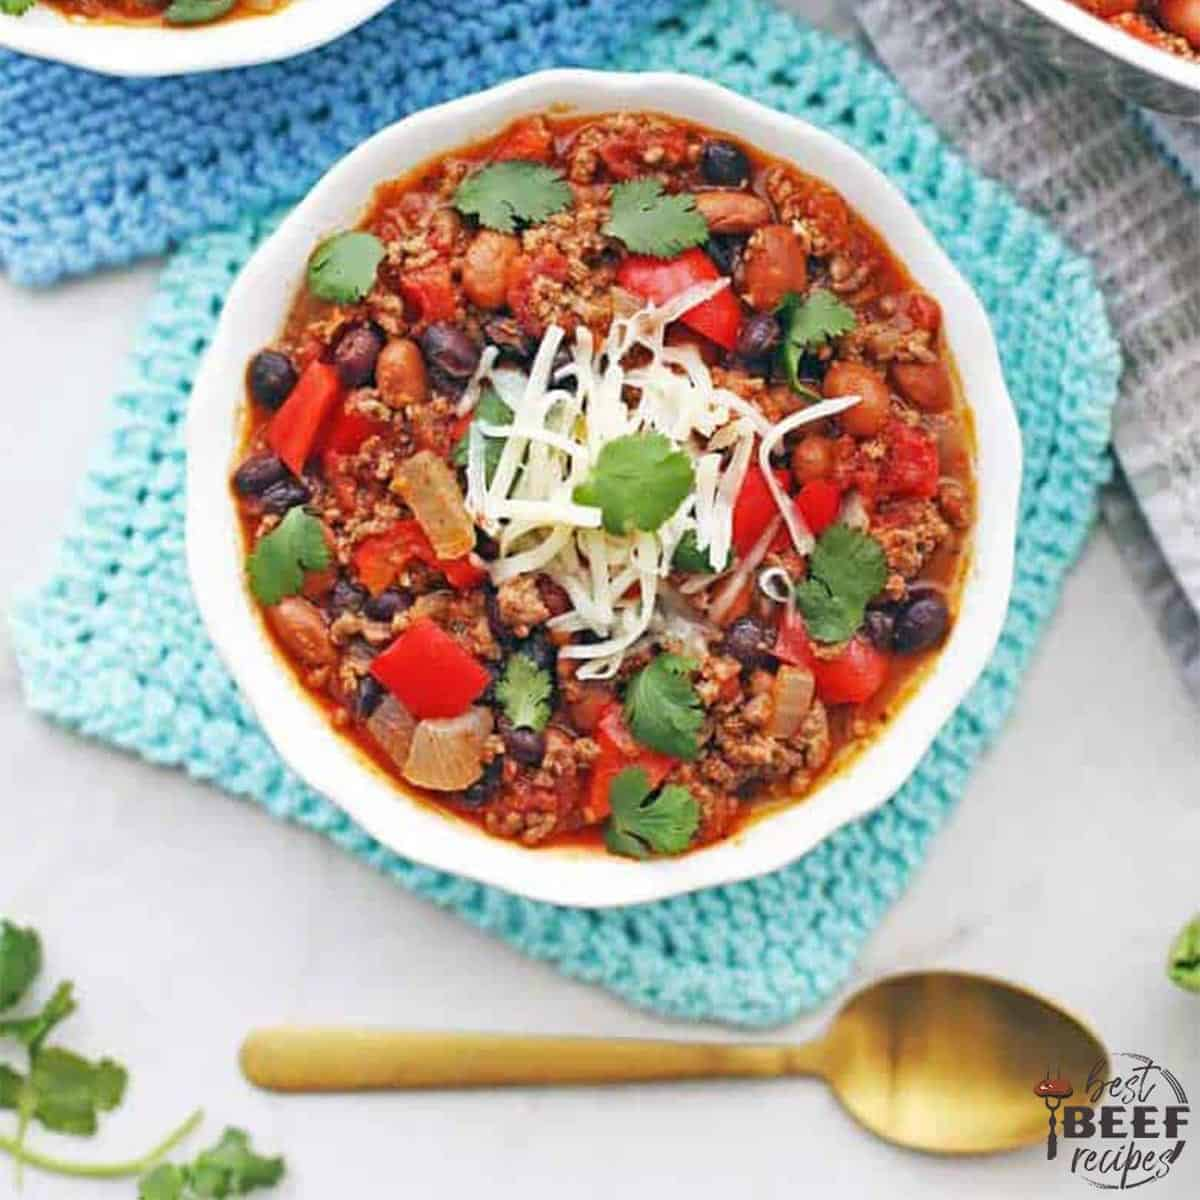 Ground beef chili in a white bowl with a spoon